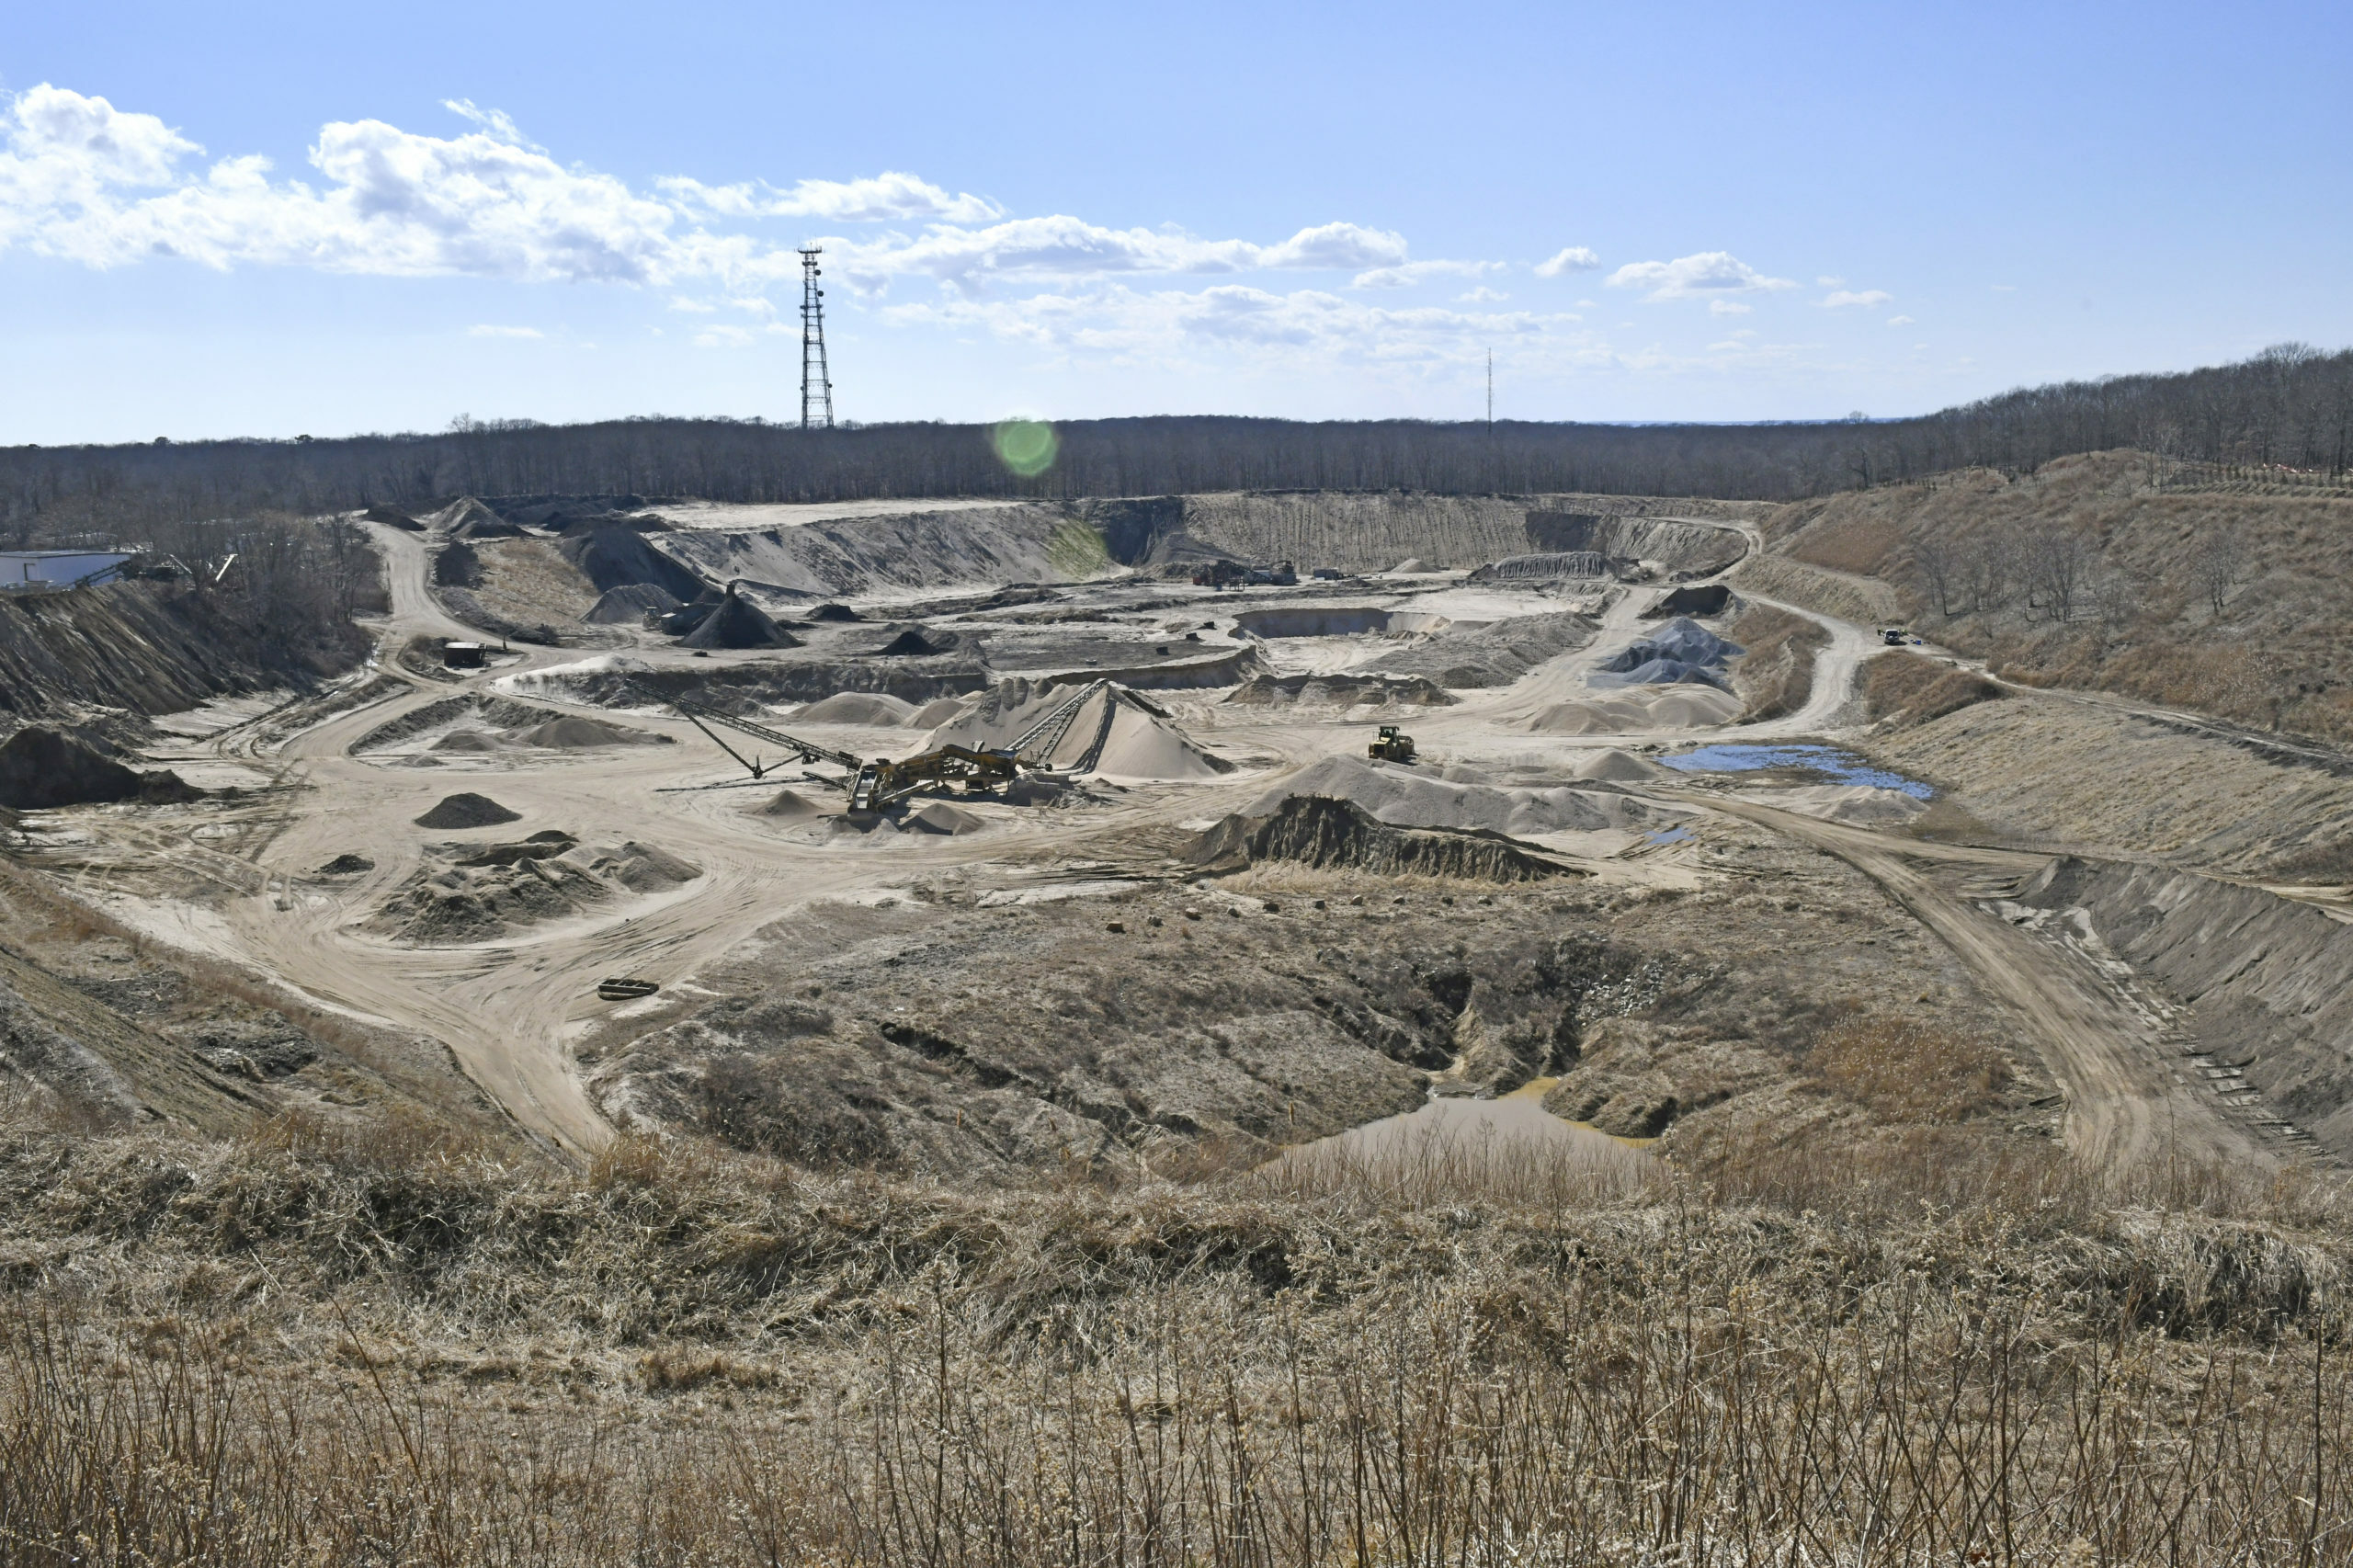 The Sand Land sand mine site in Noyac. FILE PHOTO